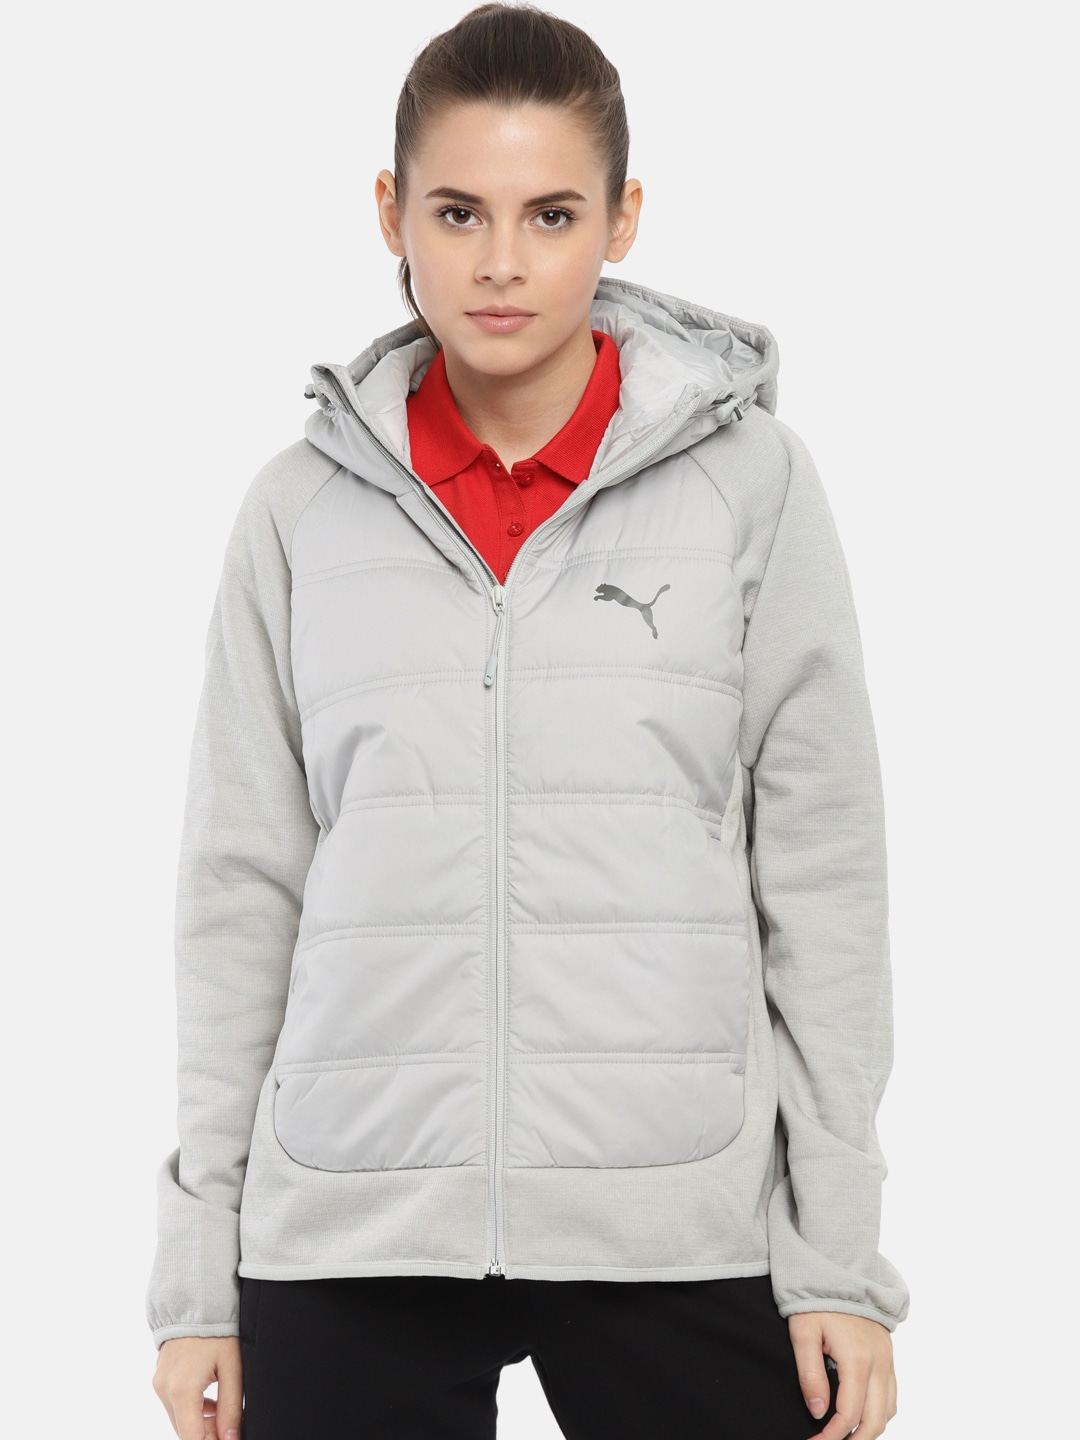 629e4db65863 Puma For Women Jackets - Buy Puma For Women Jackets online in India